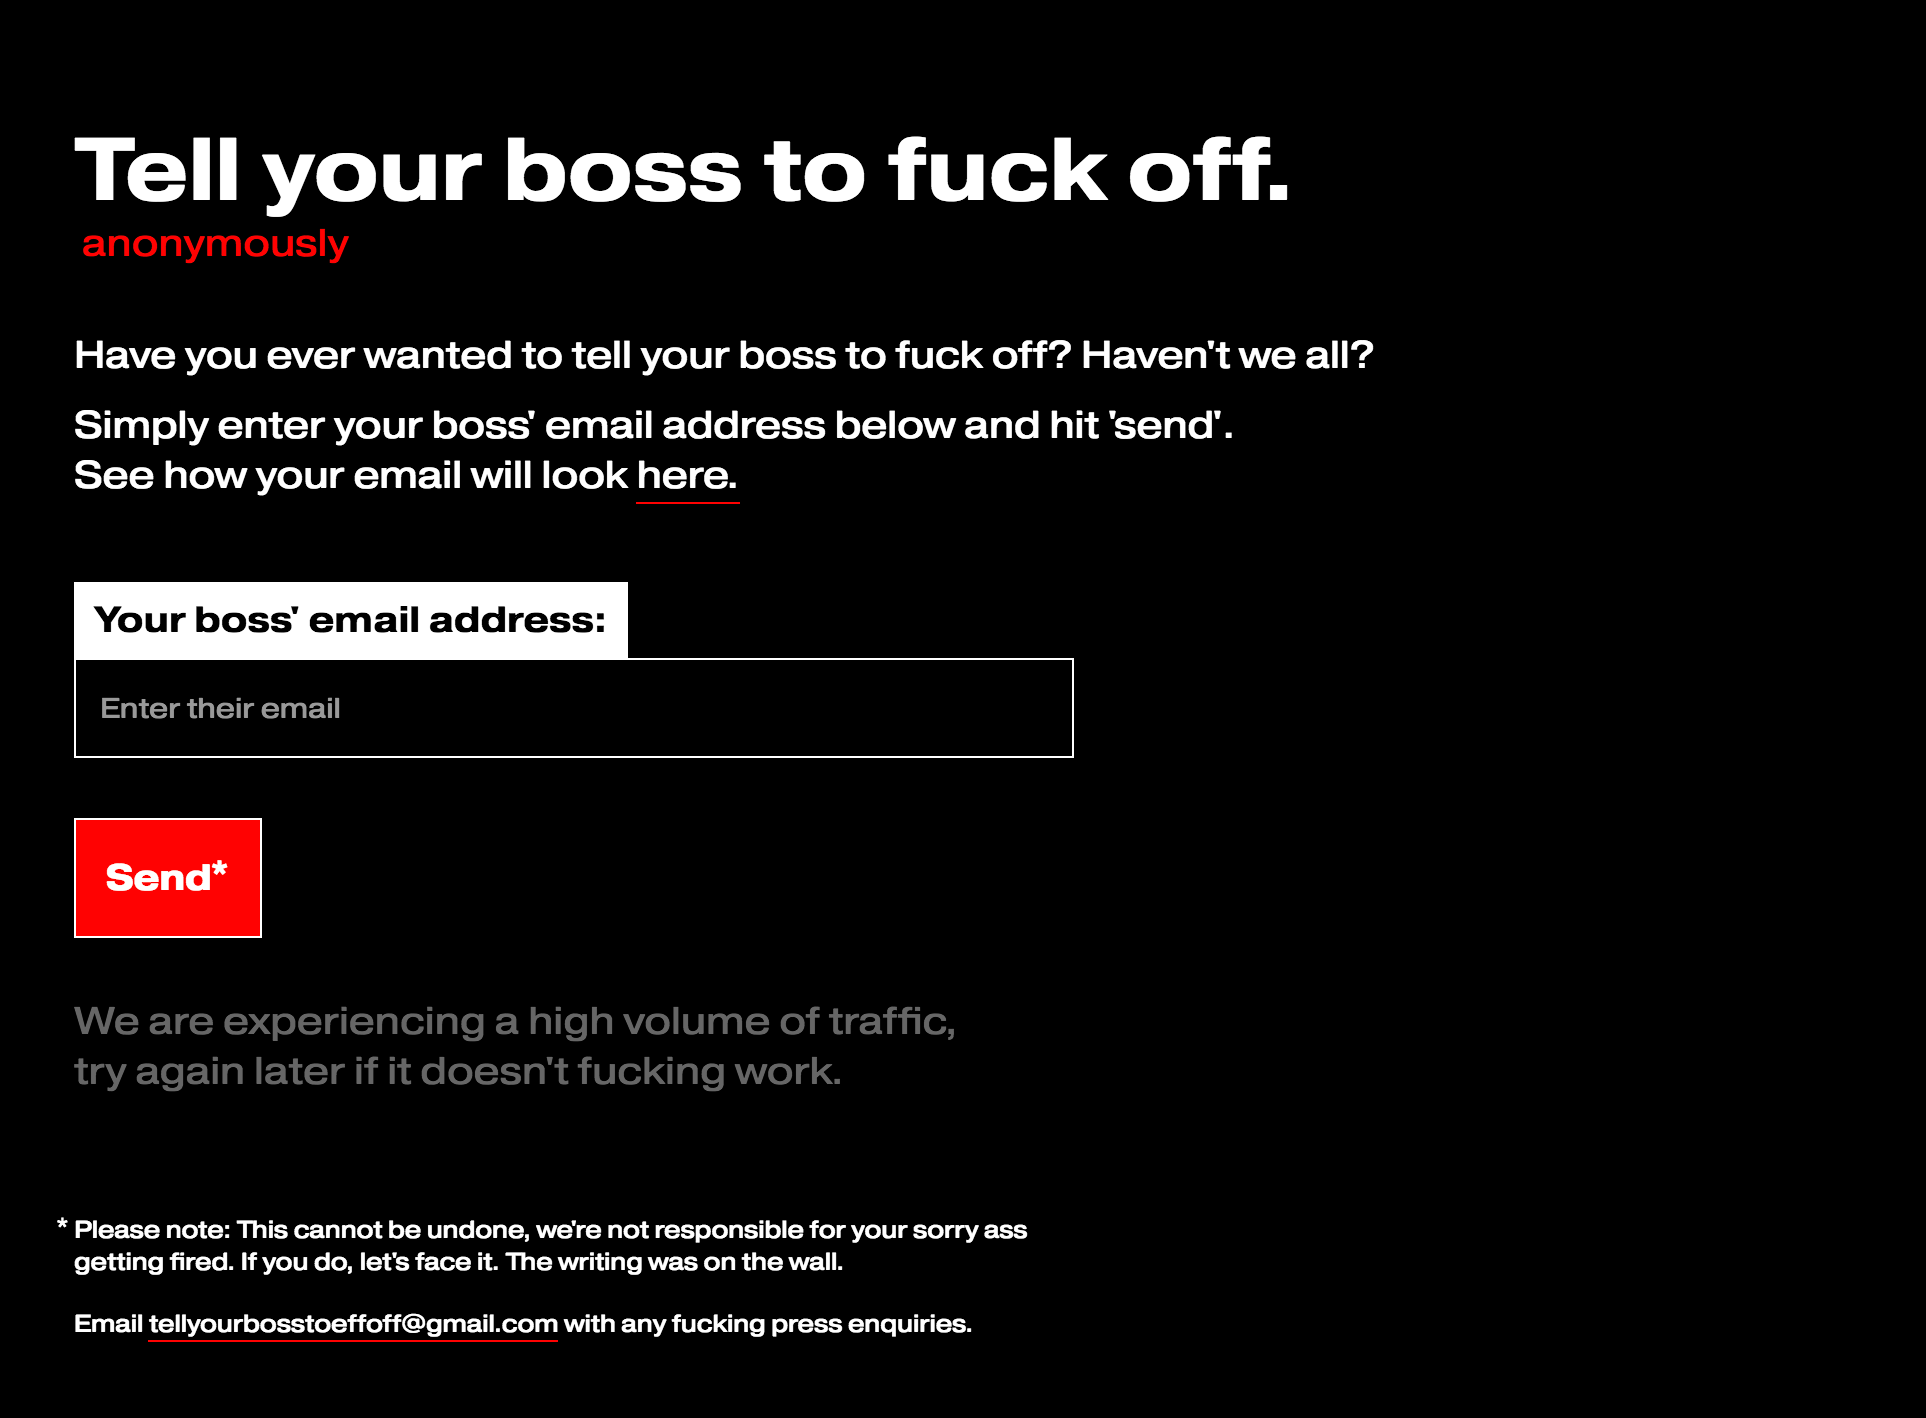 Tell your boss to fuck off